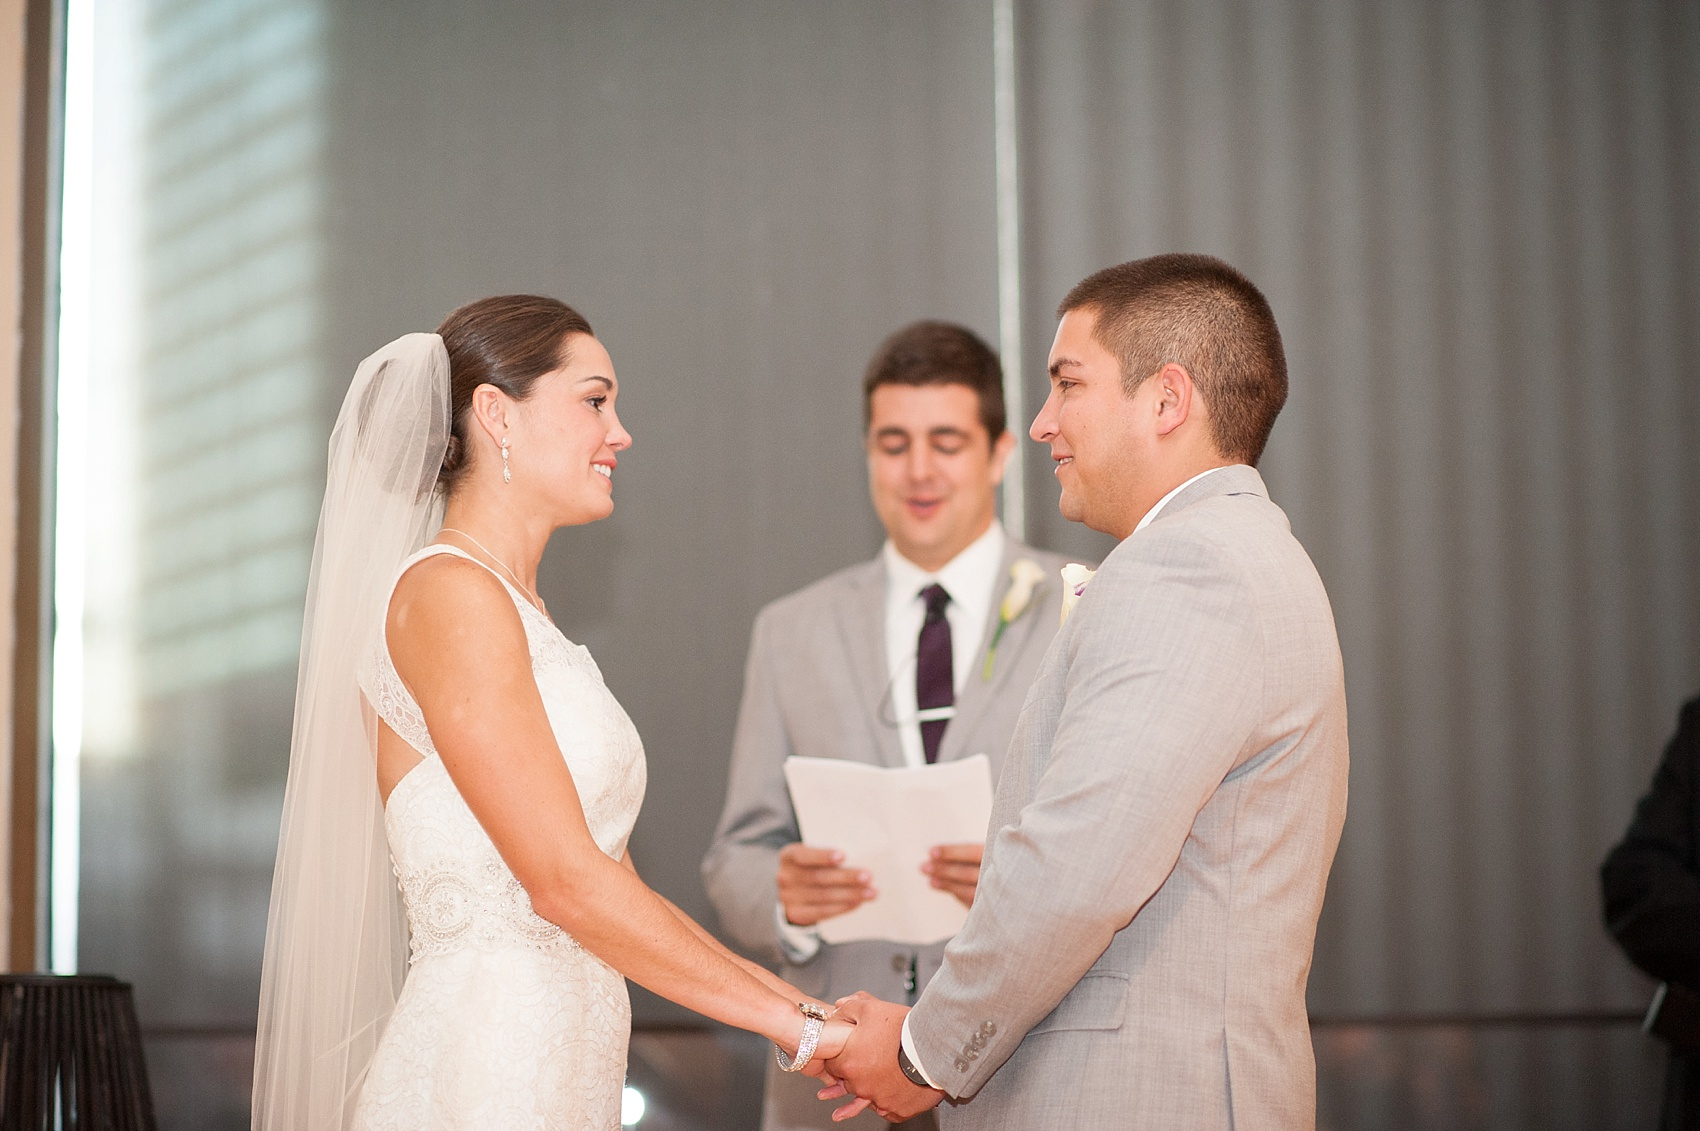 Wedding ceremony at The Center, downtown Cincinnati, Ohio. Photos by Mikkel Paige Photography.